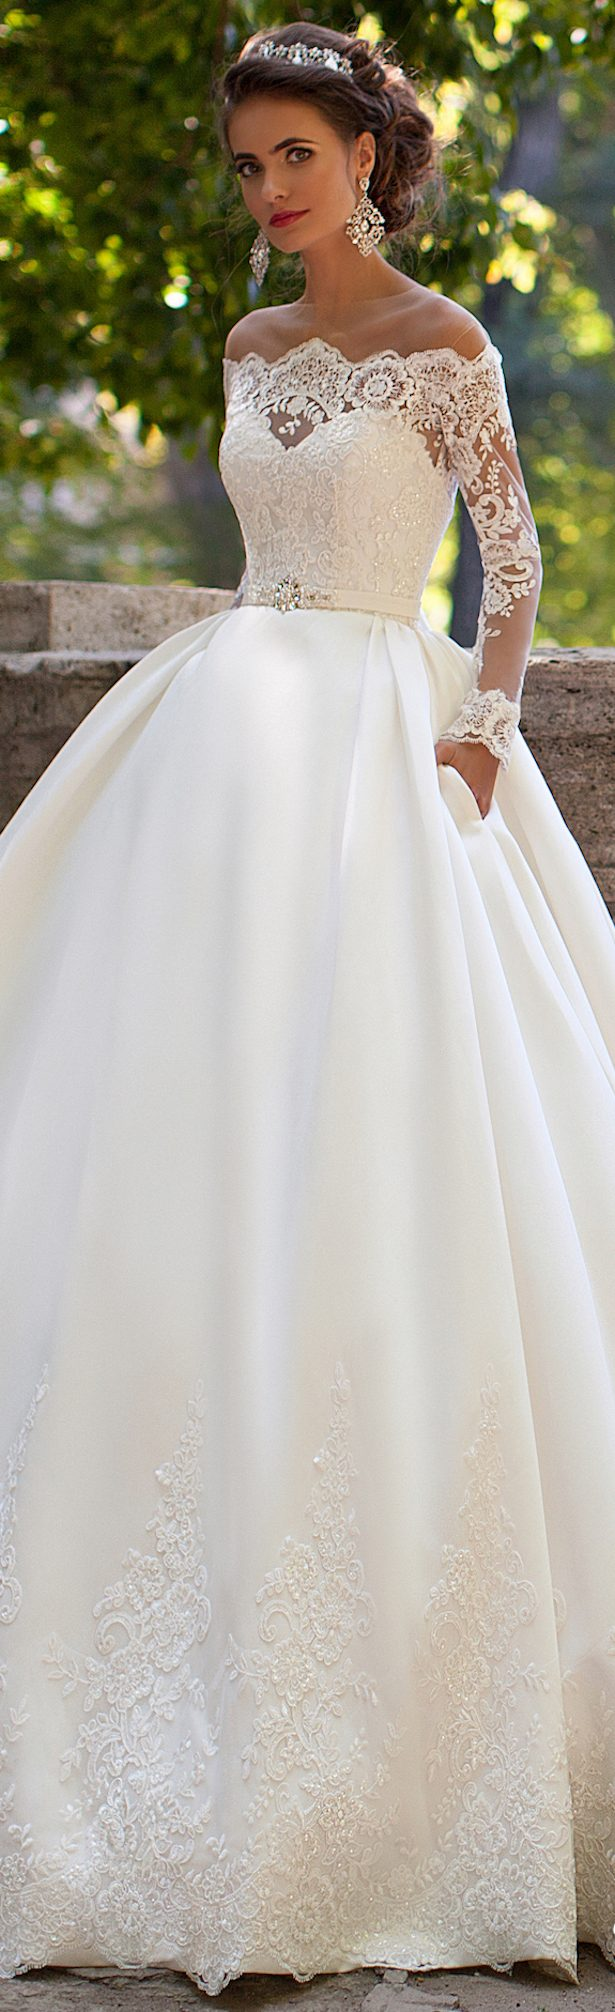 Best Wedding Dresses 2016